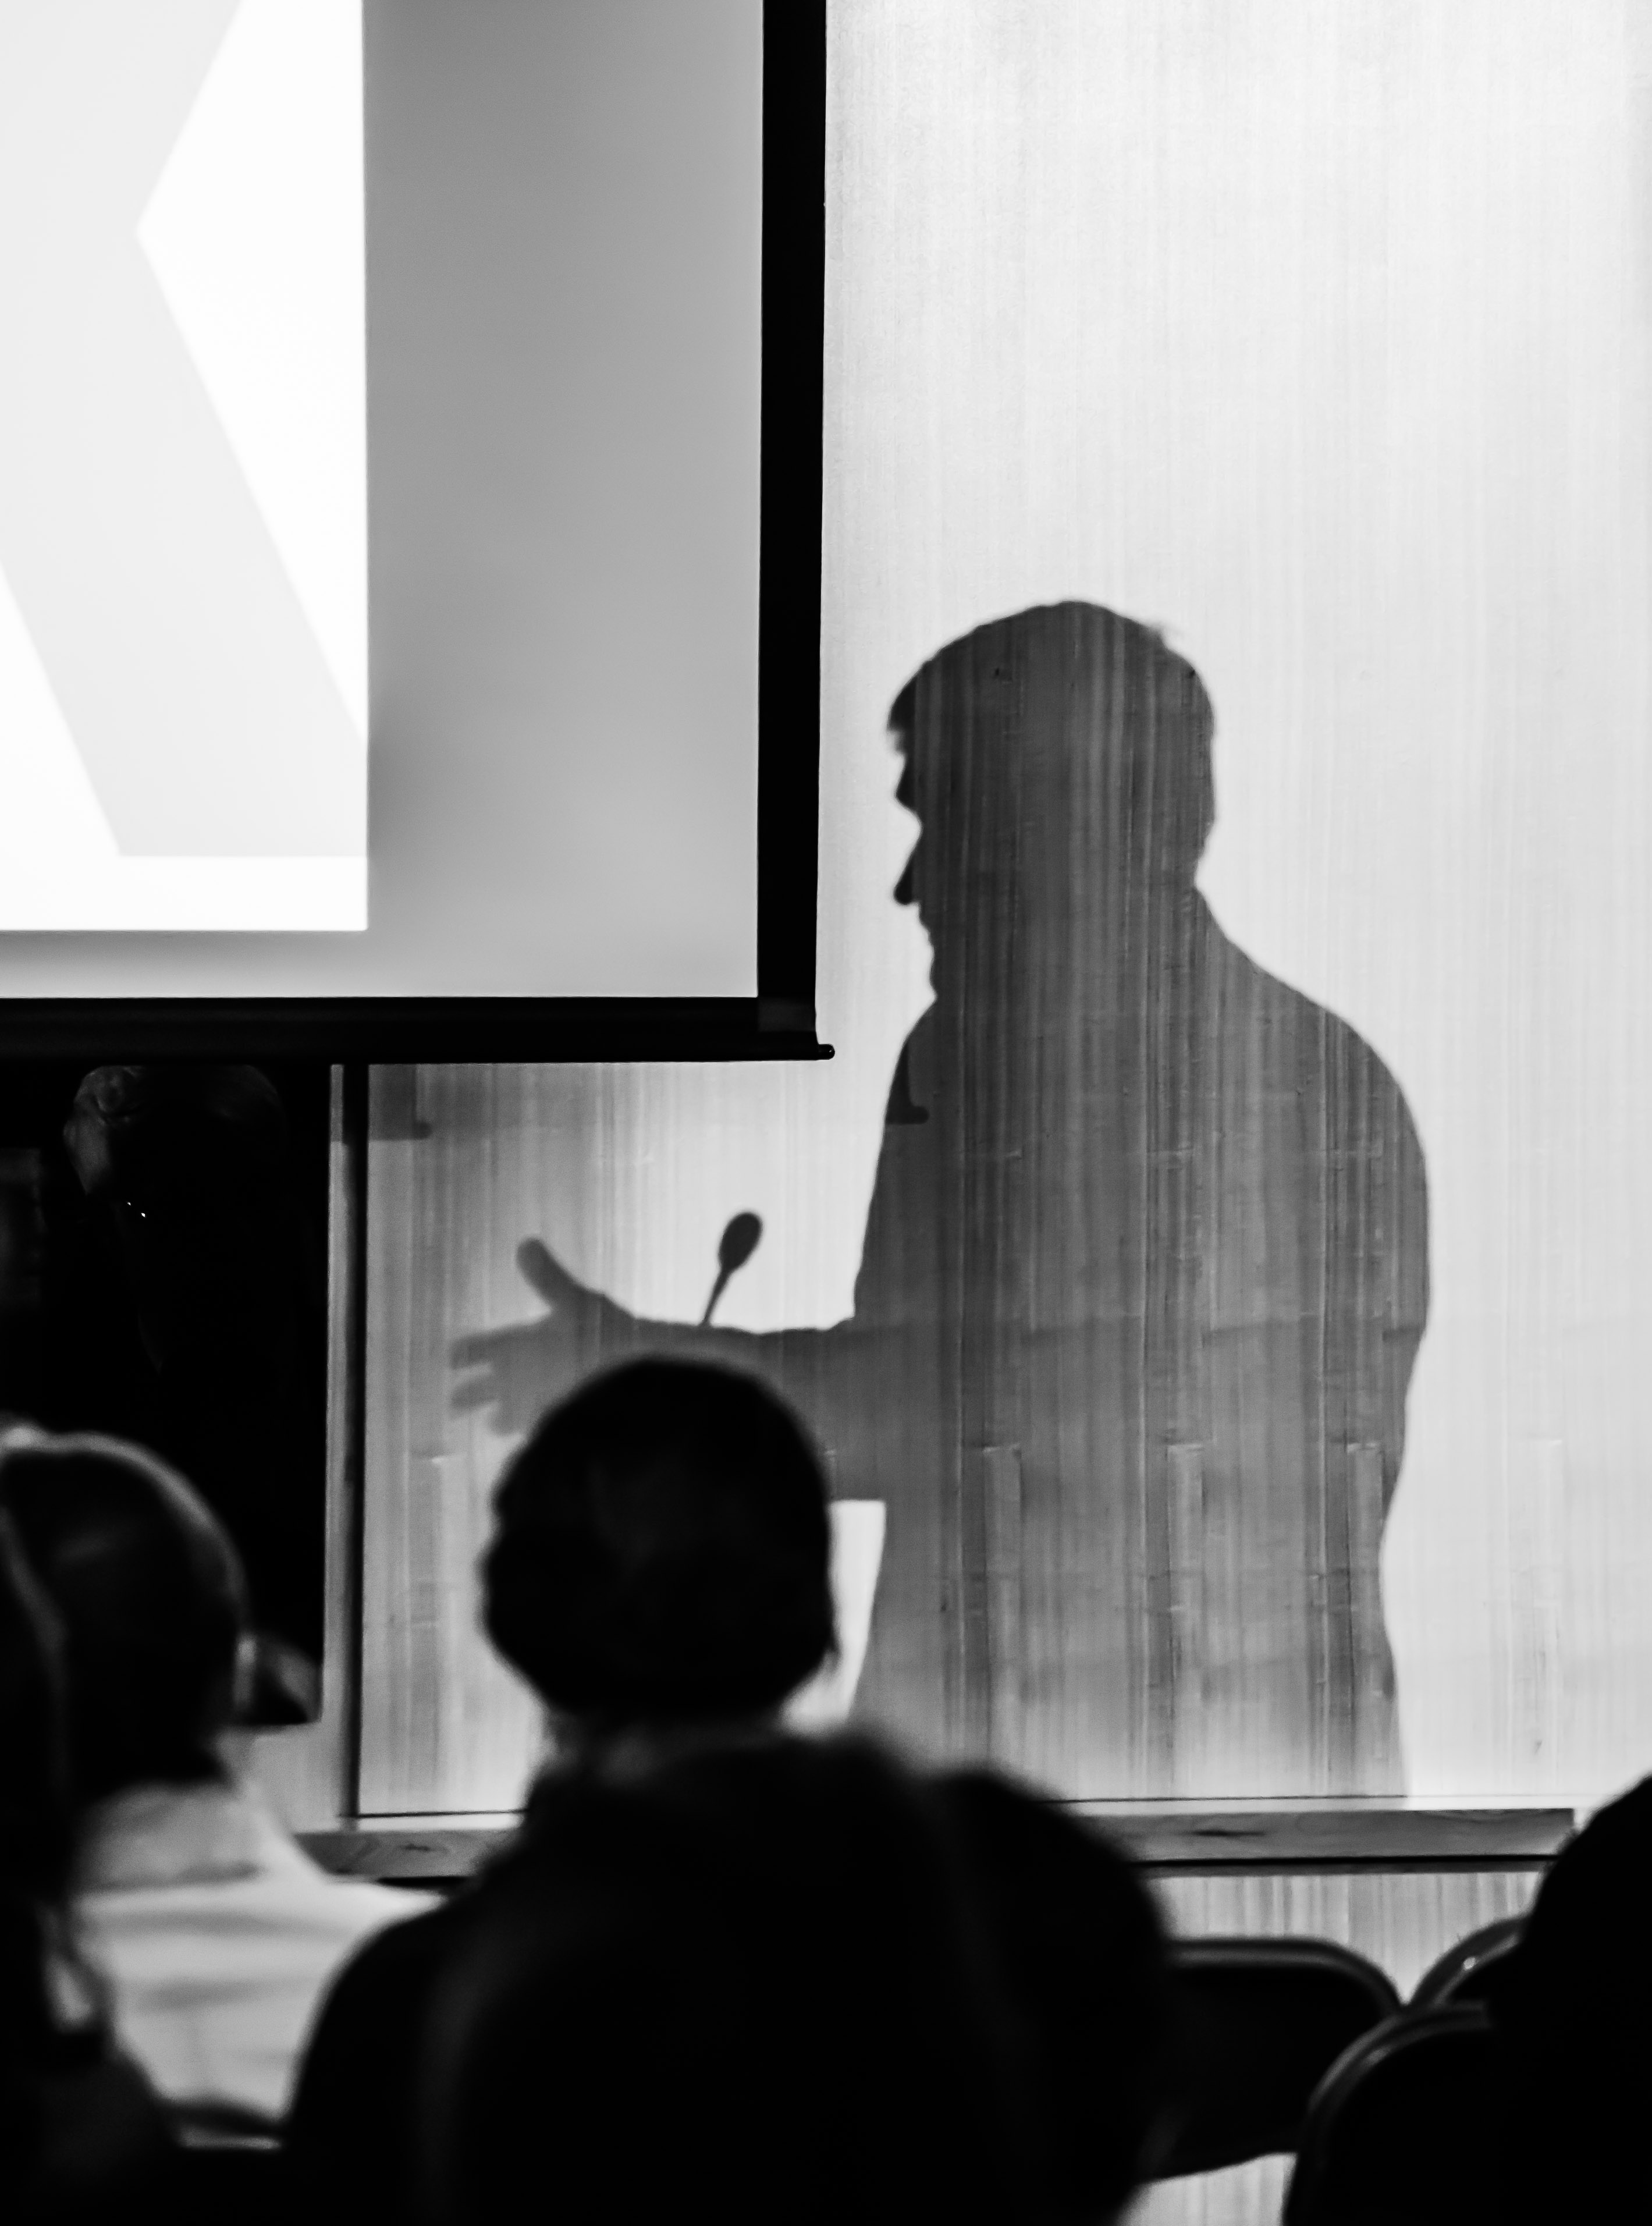 Professor Andrew Bacevich's silhouette as he speaks on US military interventions in the Middle East | Photo by Yu-Ching Chang